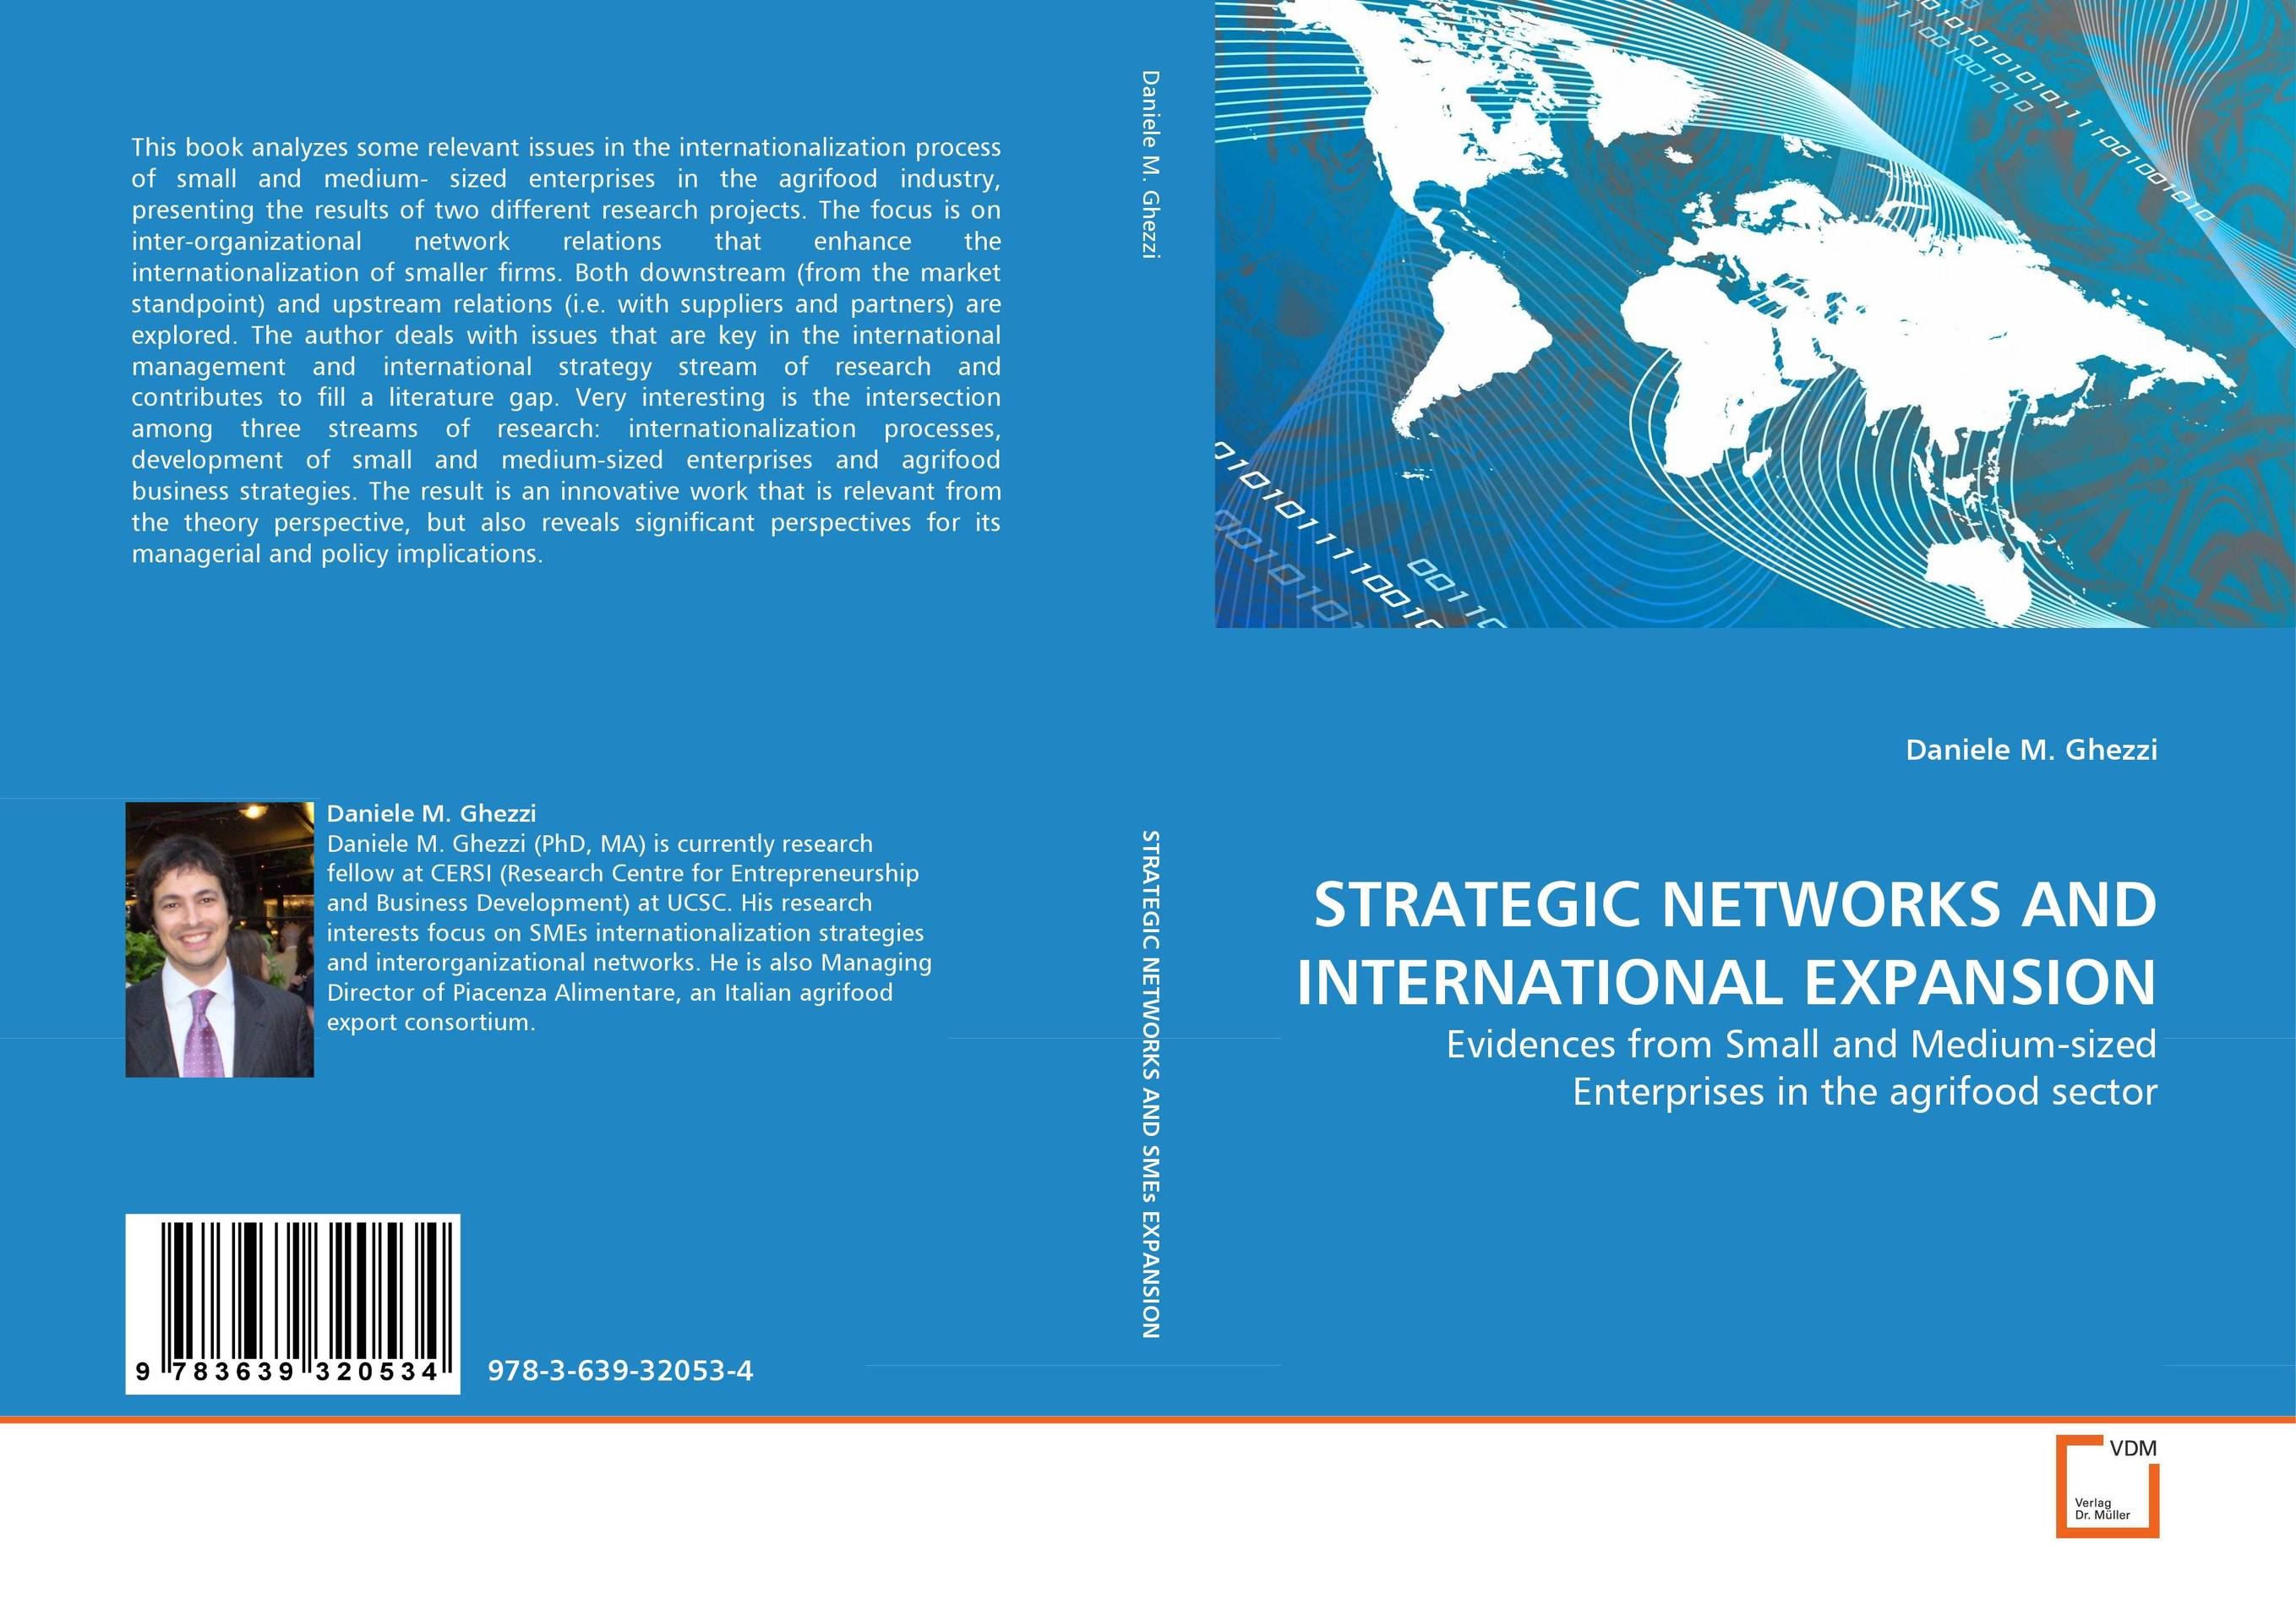 STRATEGIC NETWORKS AND INTERNATIONAL EXPANSION small and medium enterprises issues and challenges